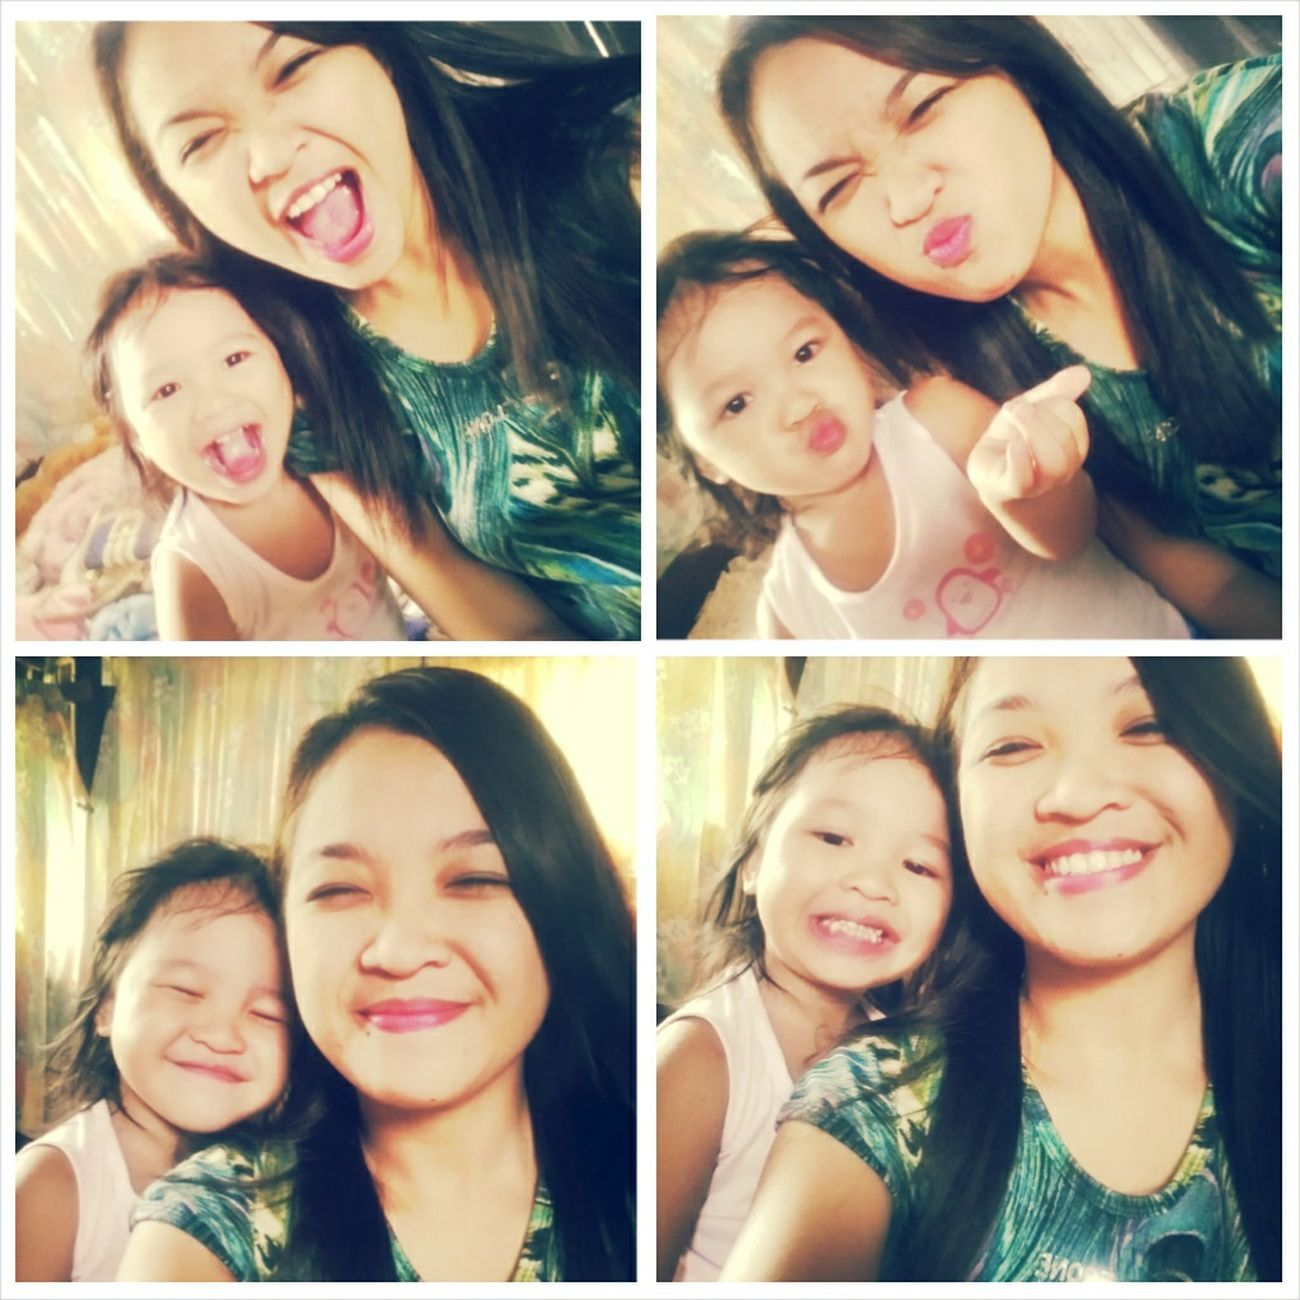 Goofing Around with this Babygirl! Enjoying Life Hello World Happy Day Cute♡ Smile ✌ Wackyface